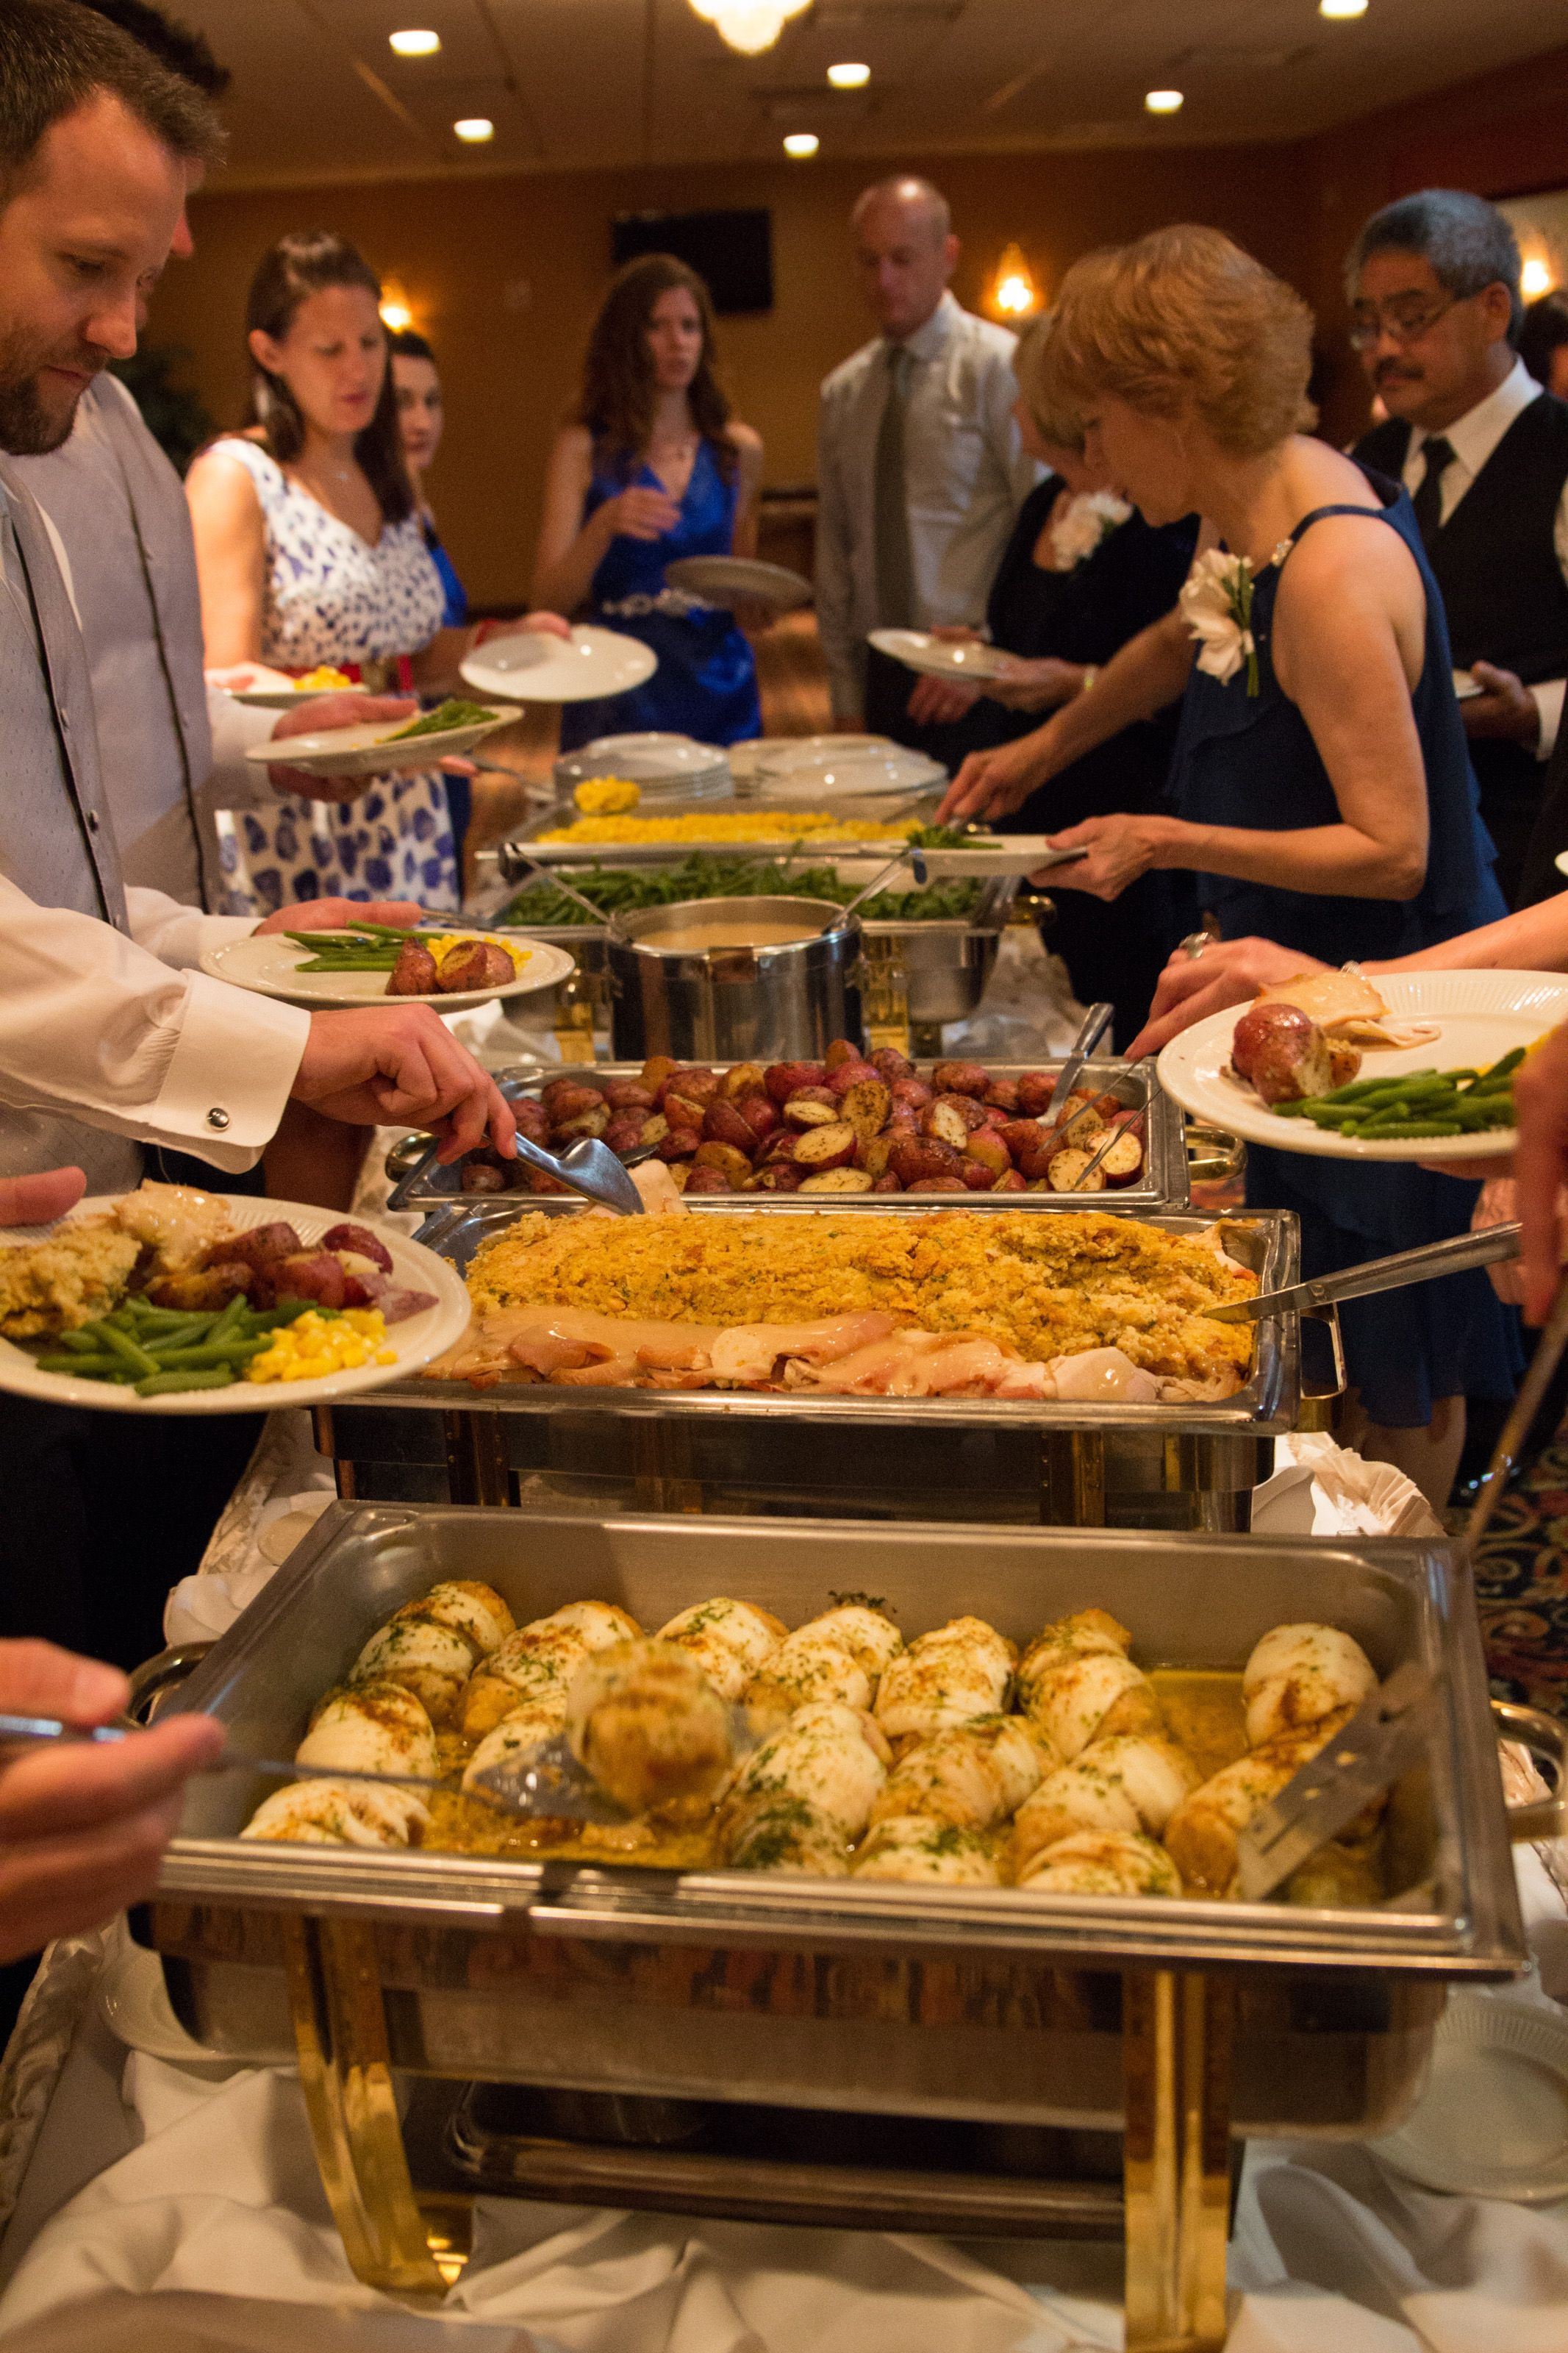 Unique Wedding Catering Ideas For The Big Day Wedding Reception Food Buffet Wedding Food Catering Wedding Buffet Food